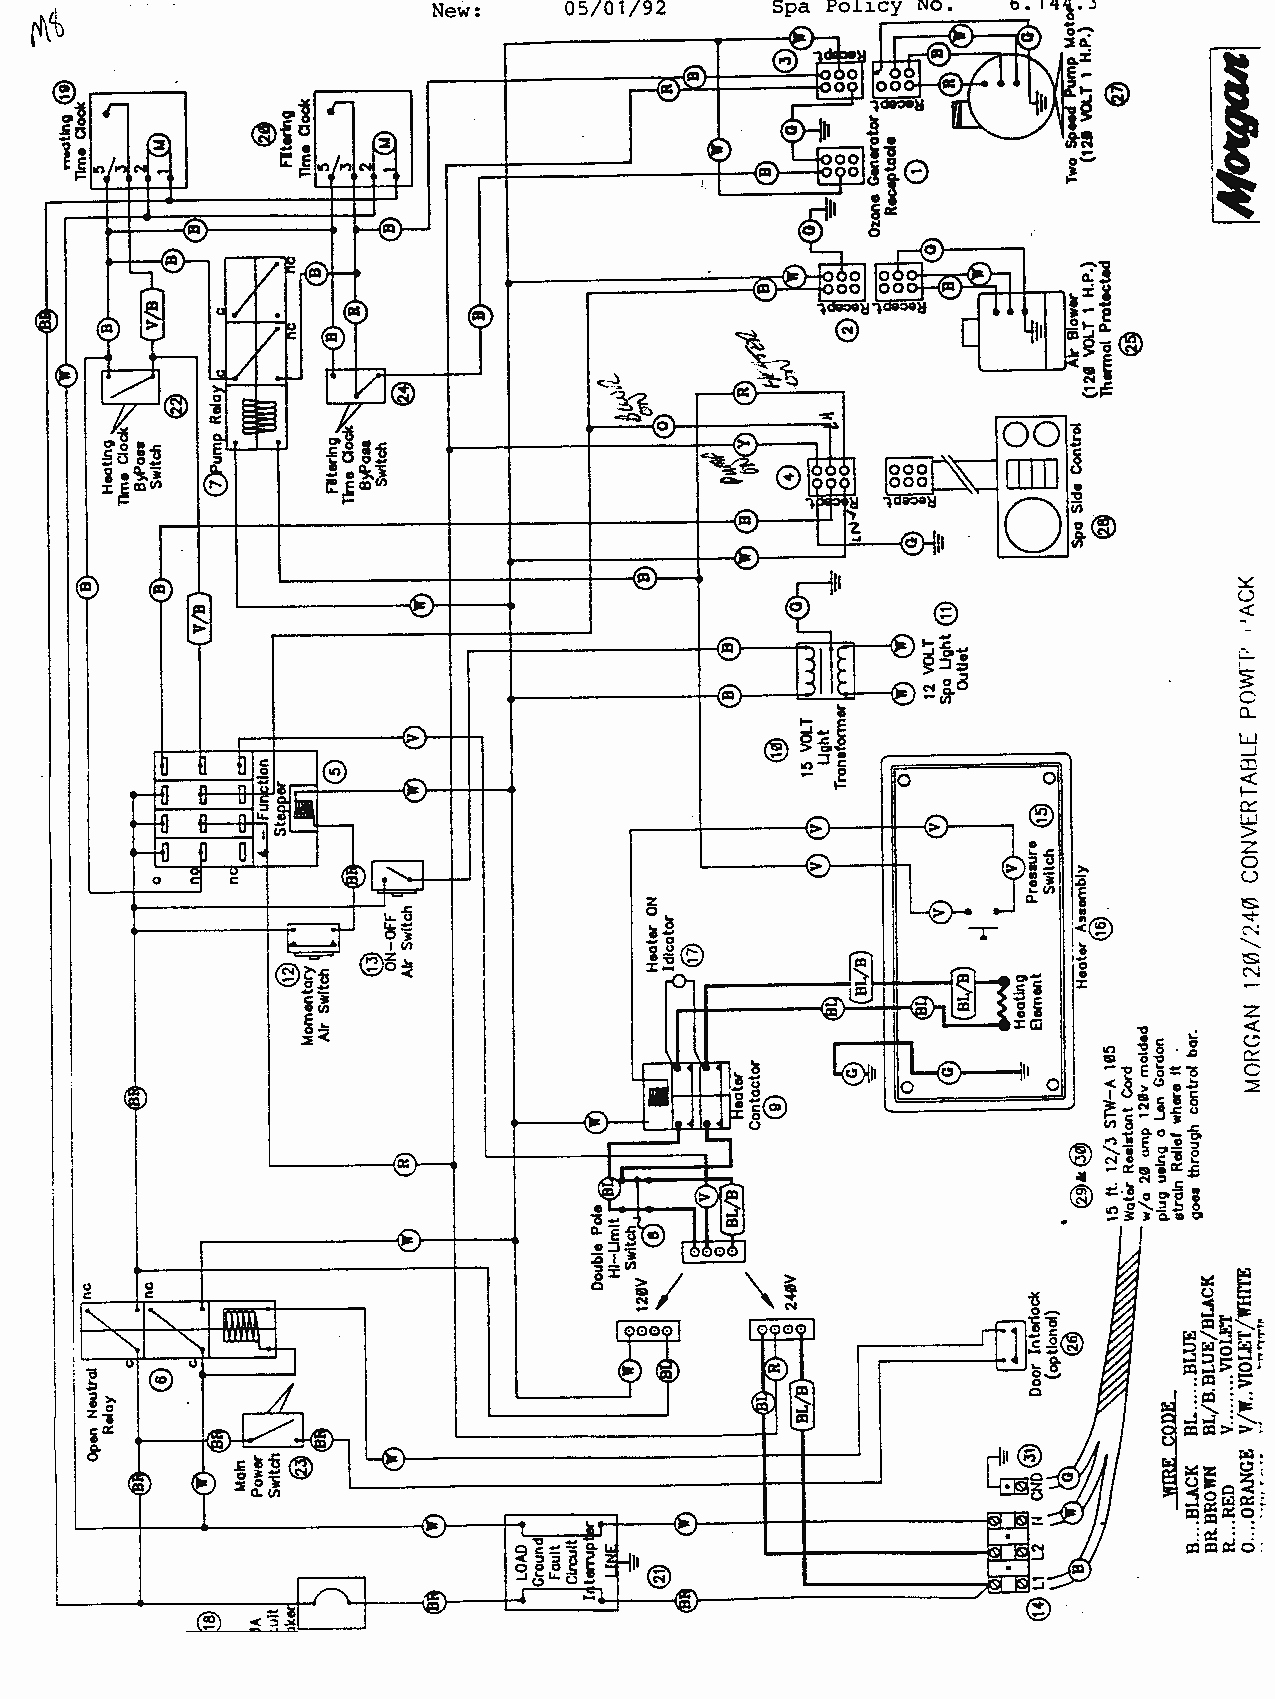 hight resolution of hot tub wiring schematic vita spa parts diagram for 220v hot tub wiring diagram to